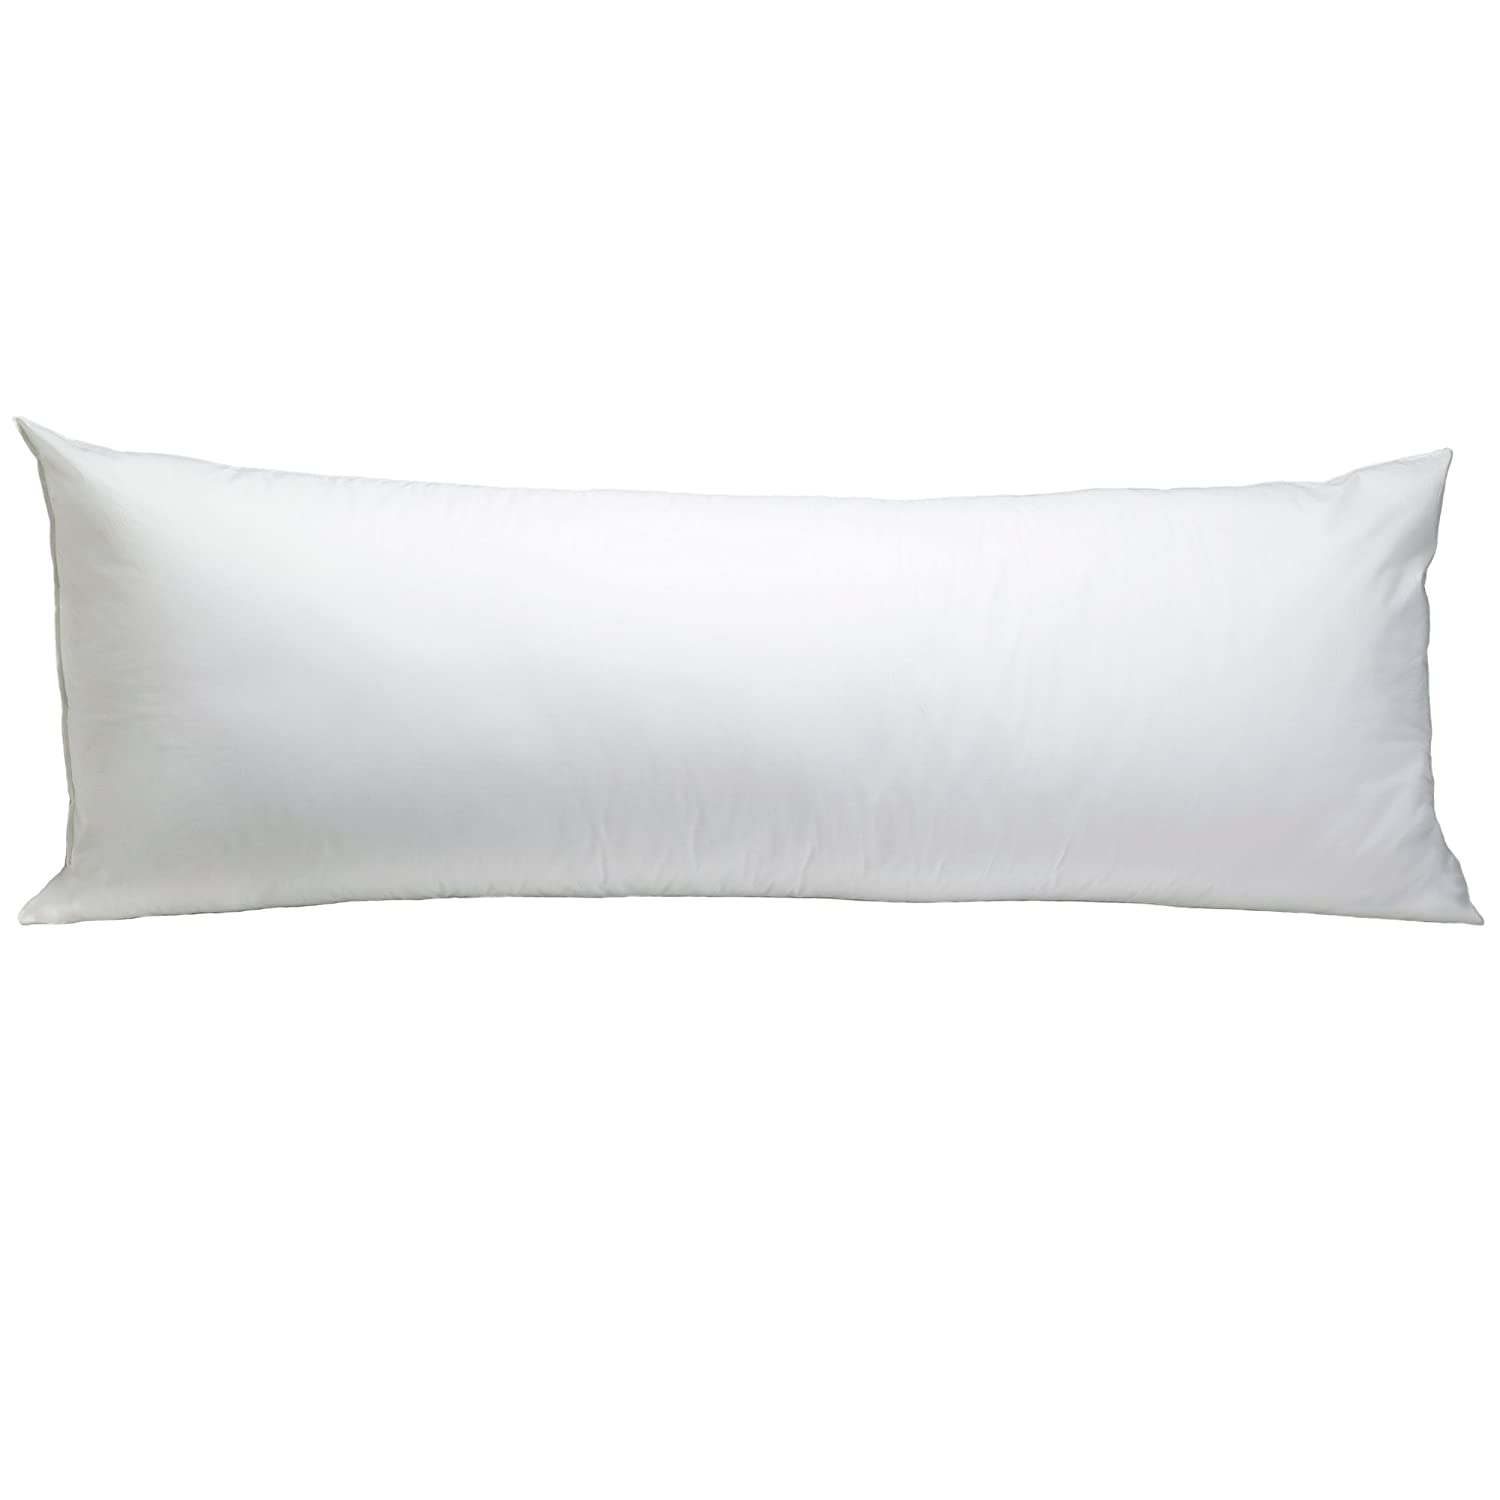 """Breathable Soft Cotton 20/""""x54/"""" Machine Washable Zippered Cover Extends Body Pillow Life Rest Right 100/% Cotton Body Pillow Protector White Keeping Pillow Fresh and Clean"""